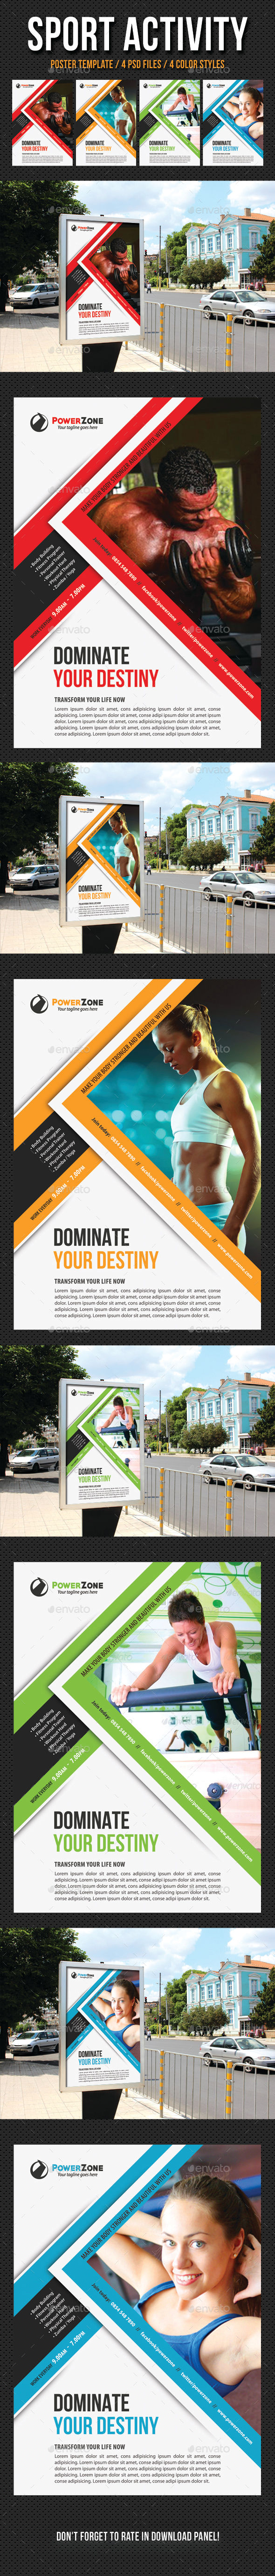 Sport Activity Poster Template V16 - Signage Print Templates